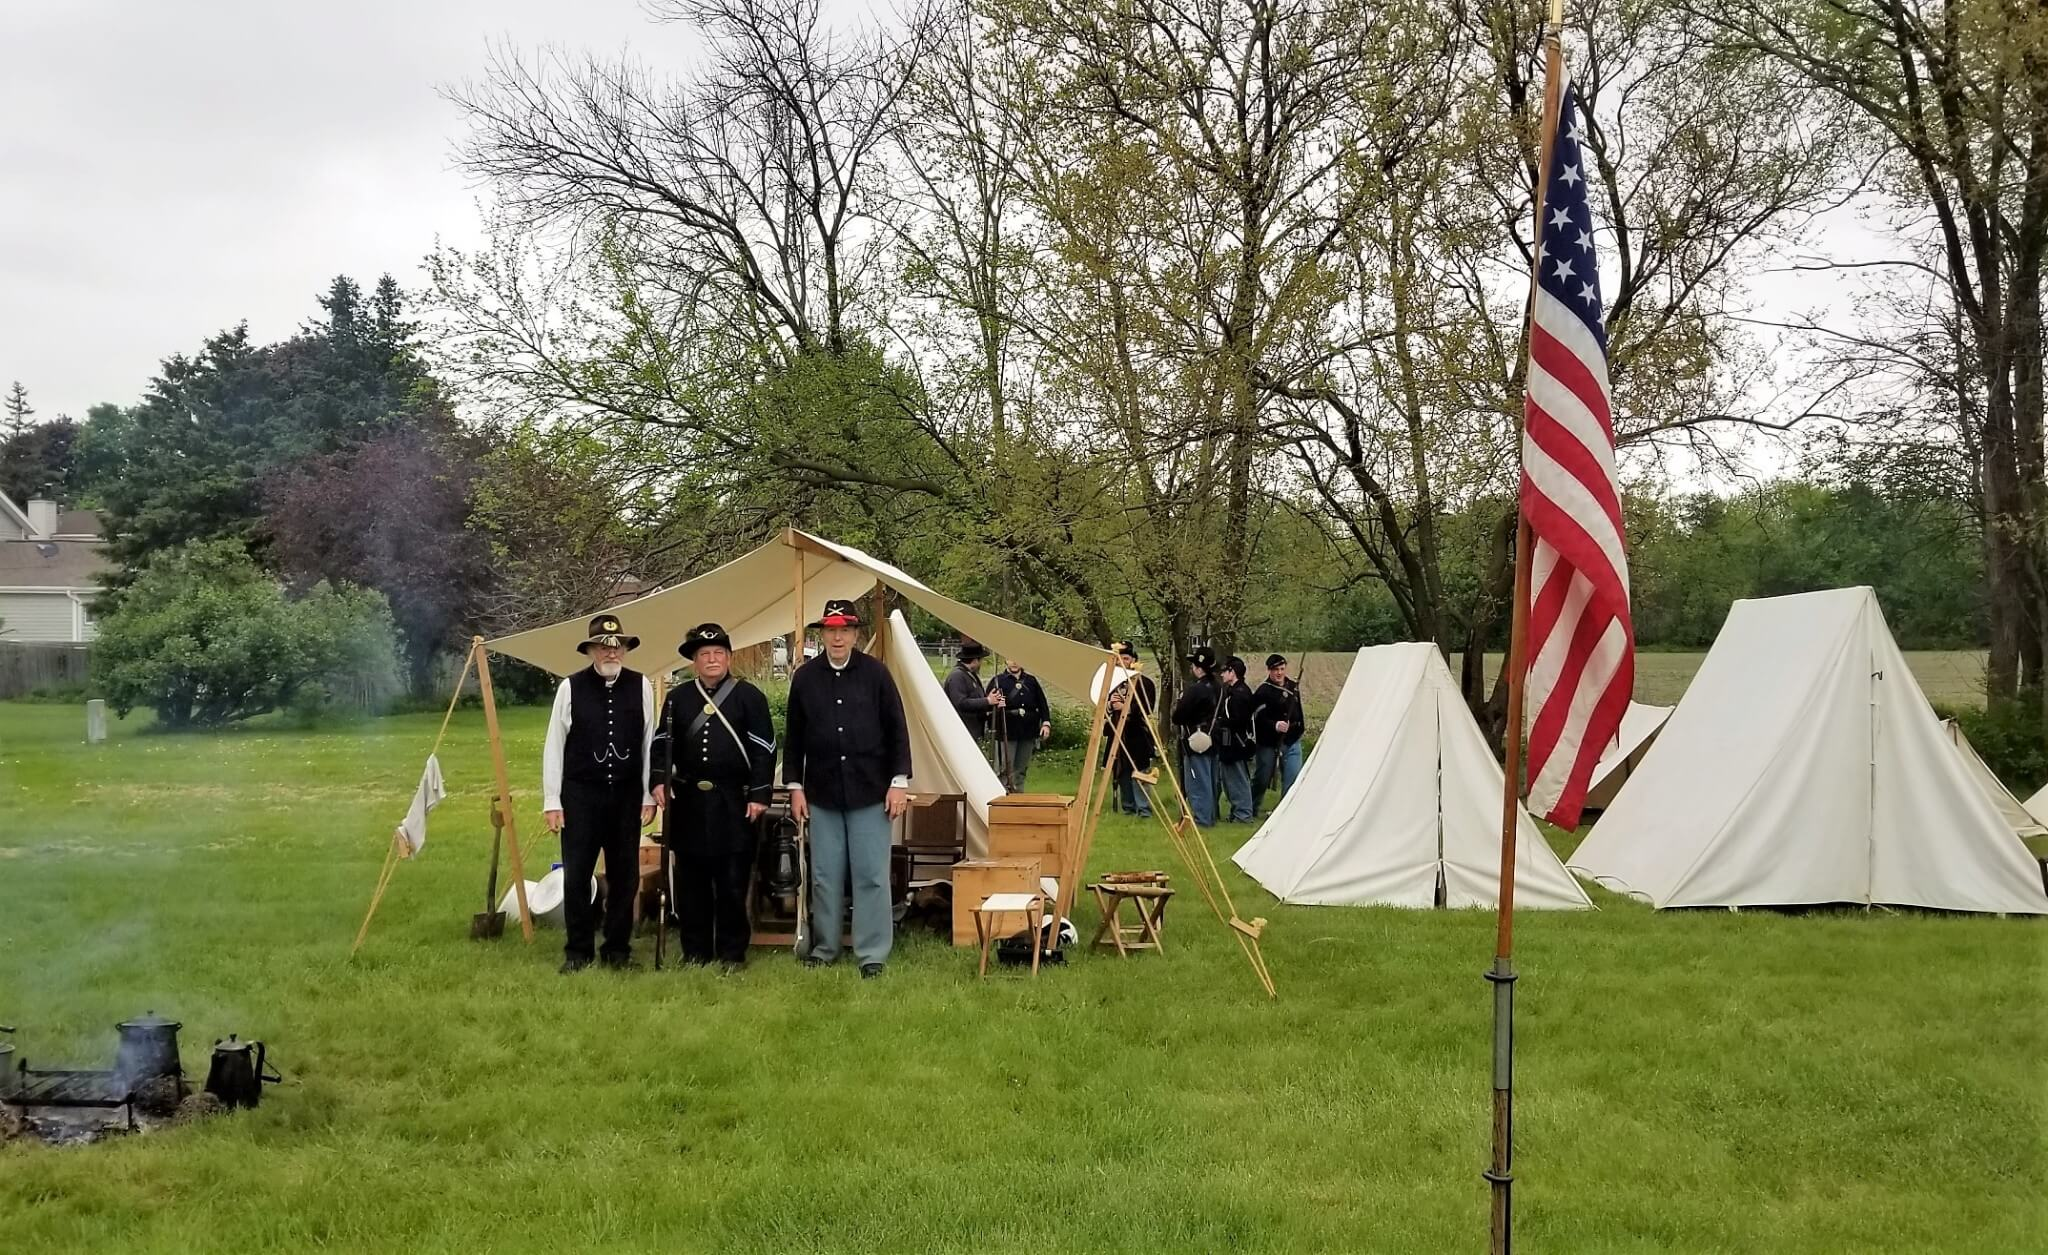 Civil War Military Camp Reenactment